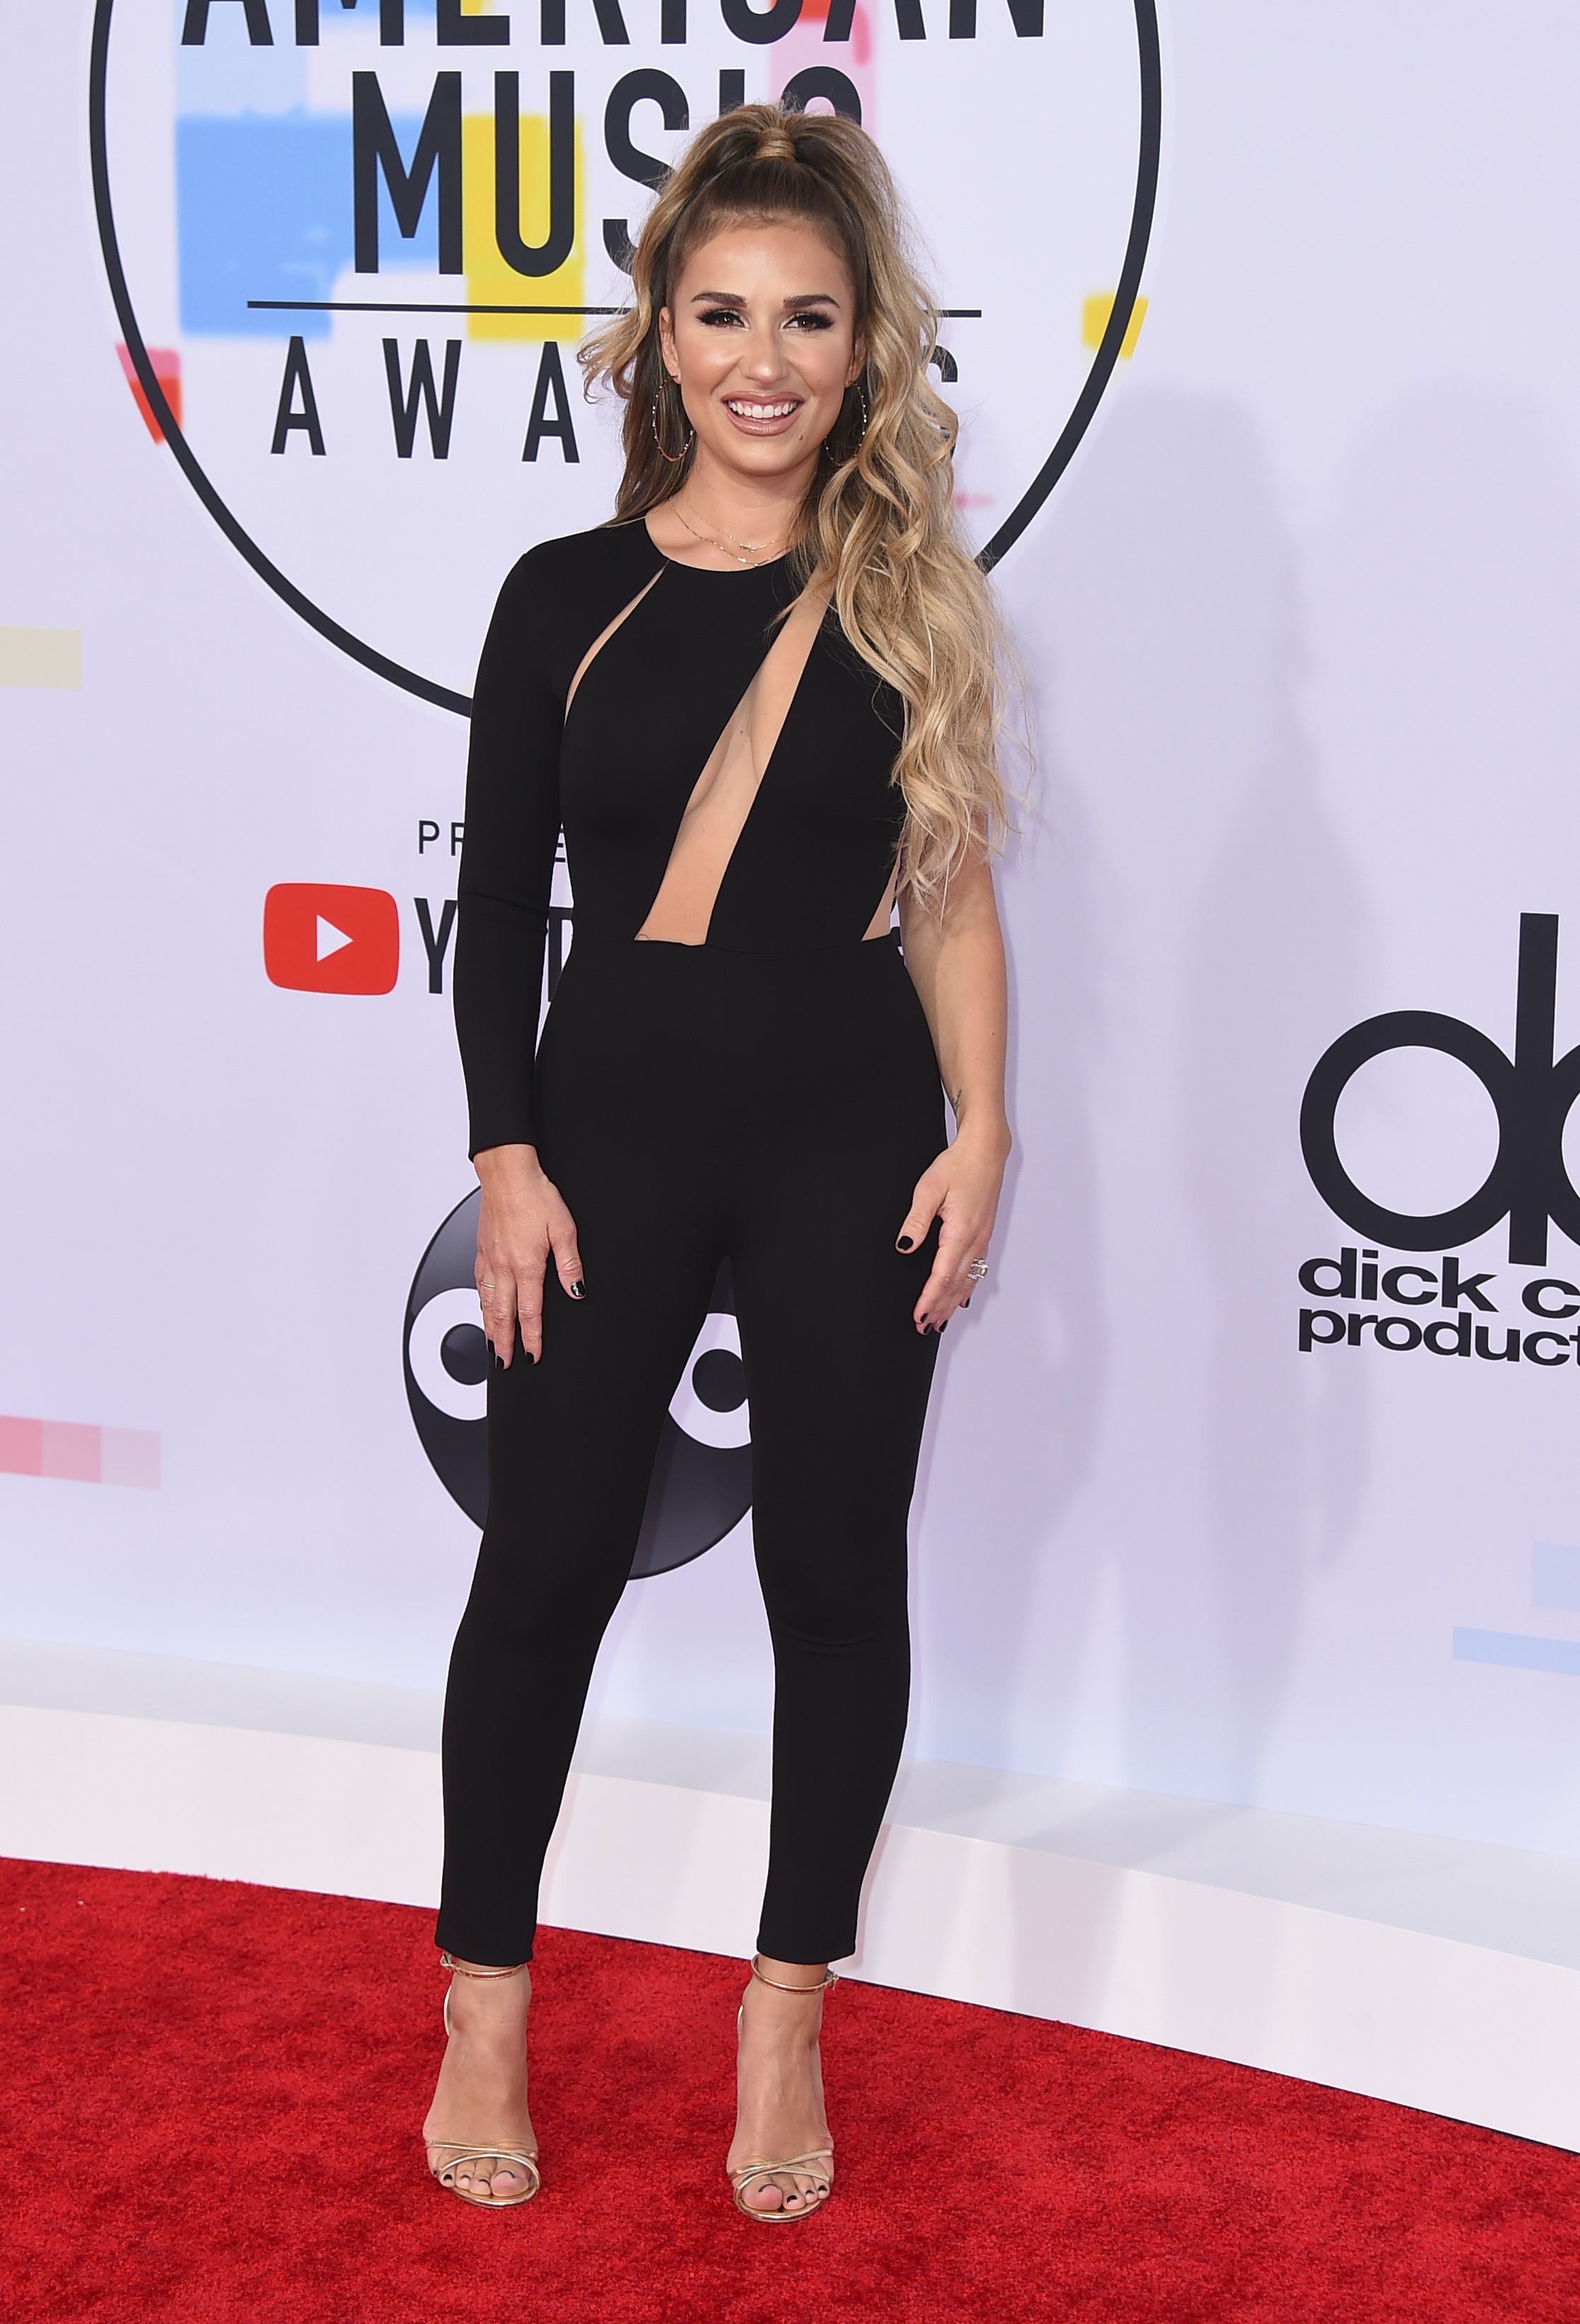 "<div class=""meta image-caption""><div class=""origin-logo origin-image none""><span>none</span></div><span class=""caption-text"">Jessie James Decker arrives at the American Music Awards on Tuesday, Oct. 9, 2018, at the Microsoft Theater in Los Angeles. (Photo by Jordan Strauss/Invision/AP)</span></div>"